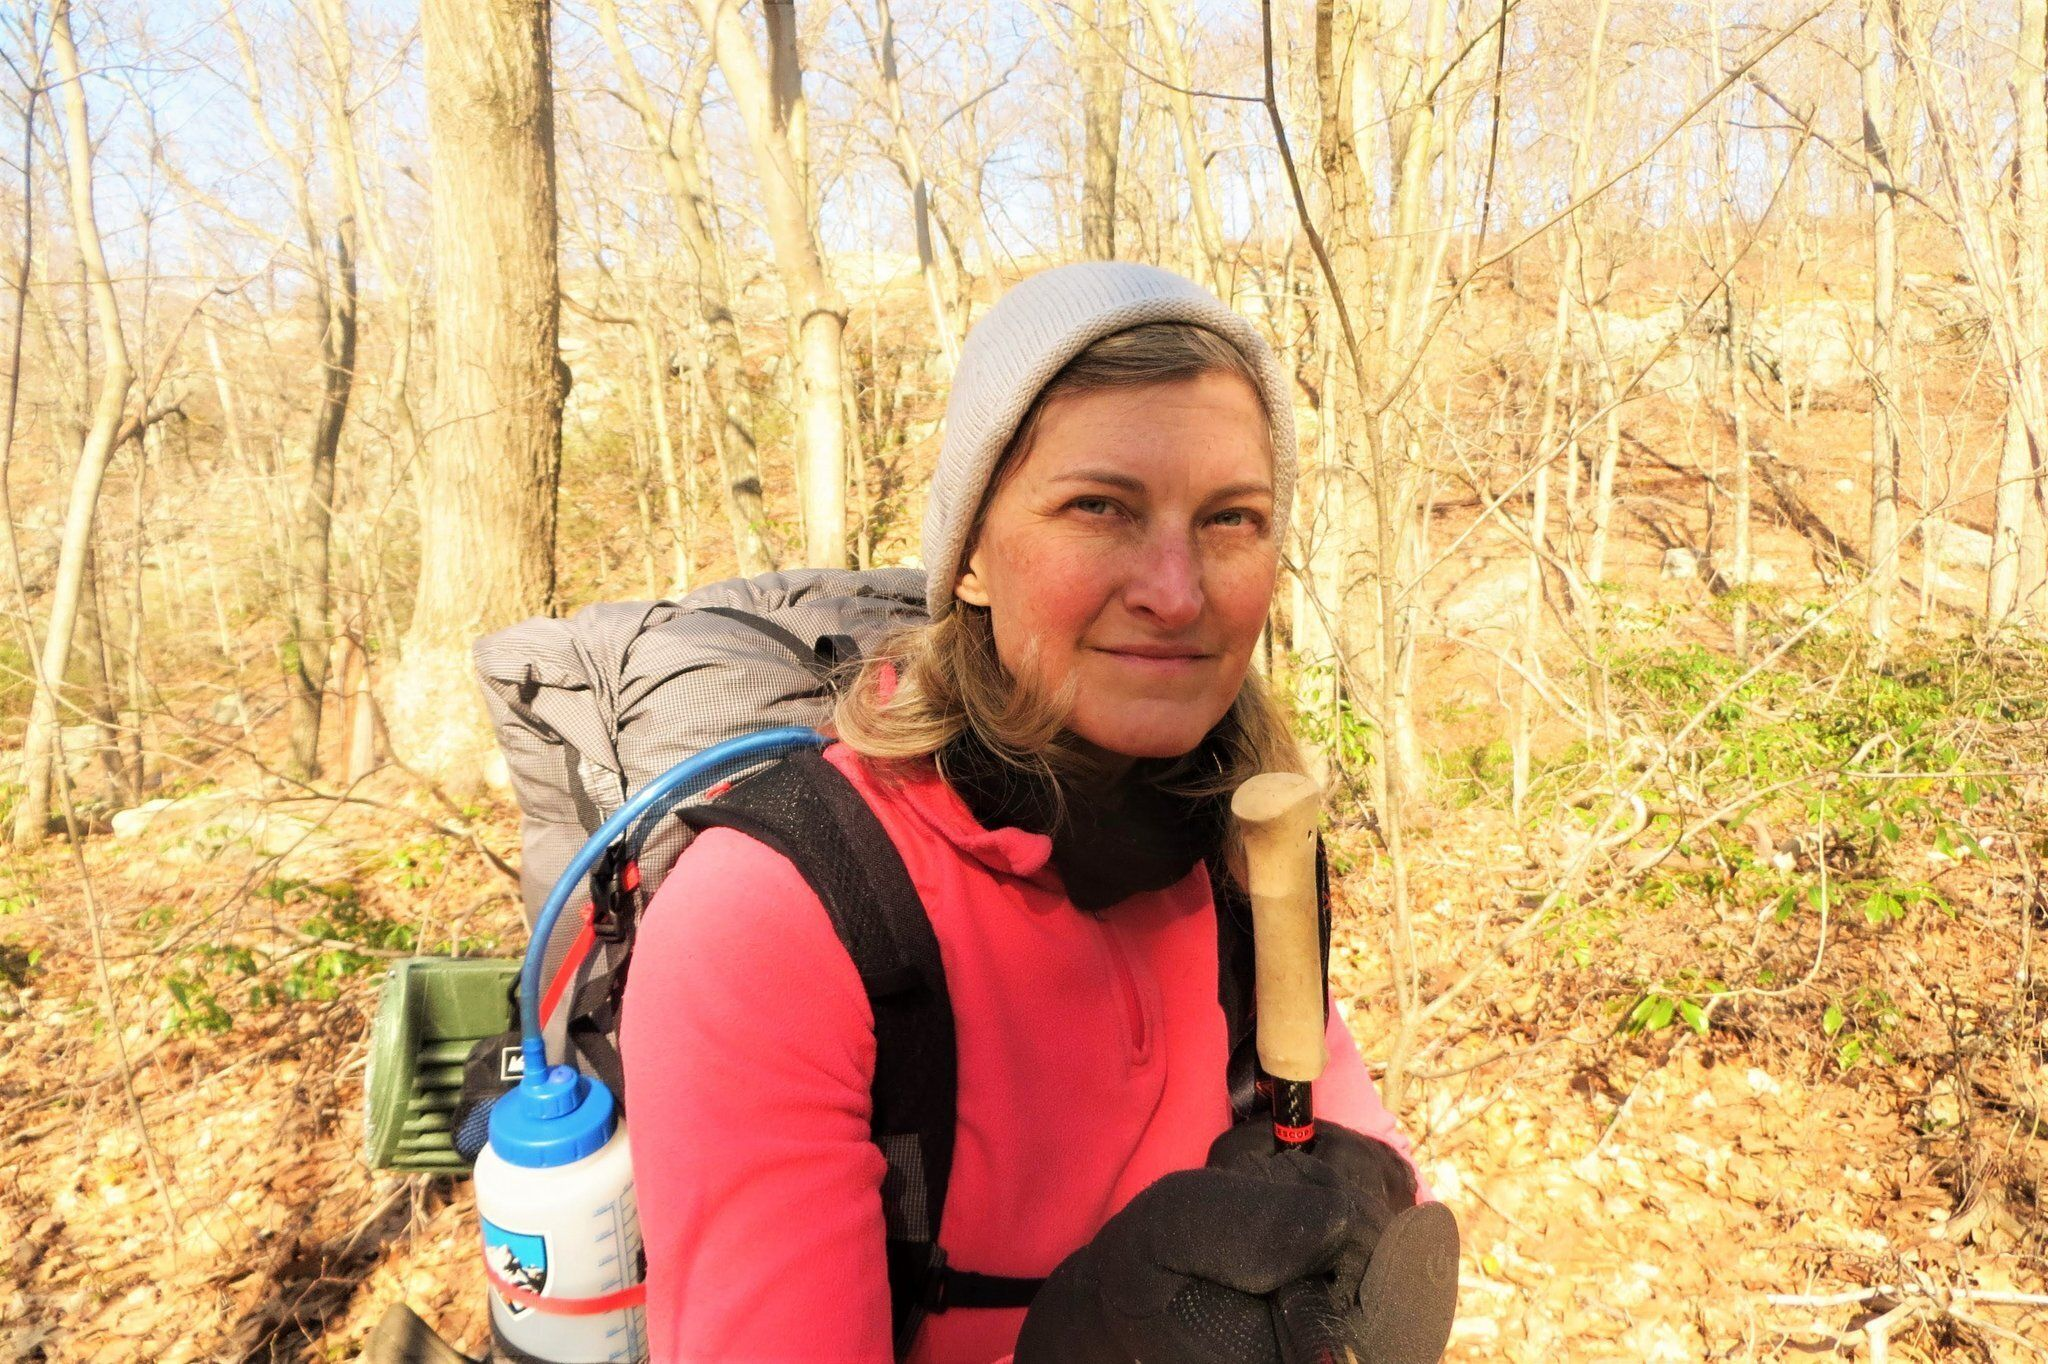 """Stephanie Joyner hiking the Appalachian Trail in New York two weeks before becoming infected with the coronavirus. It shows """""""